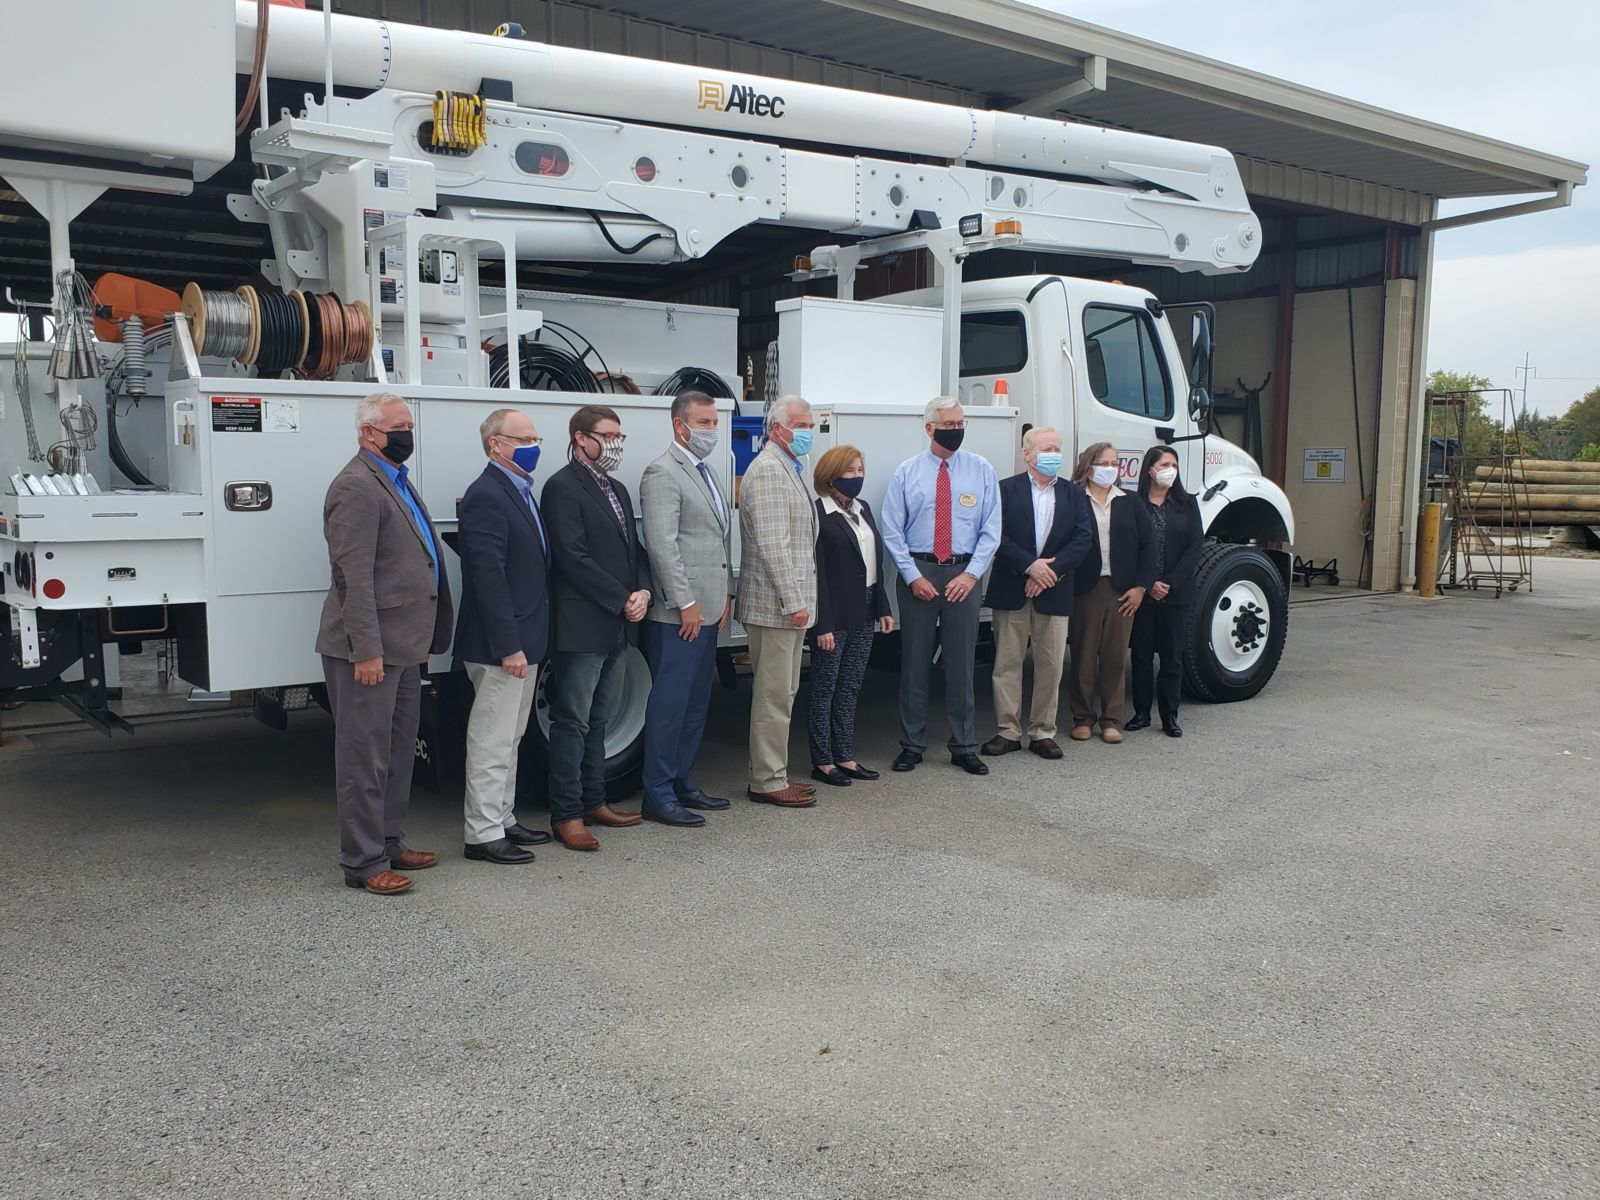 representatives of Tennessee Broadband Association members standing in front of a lift truck